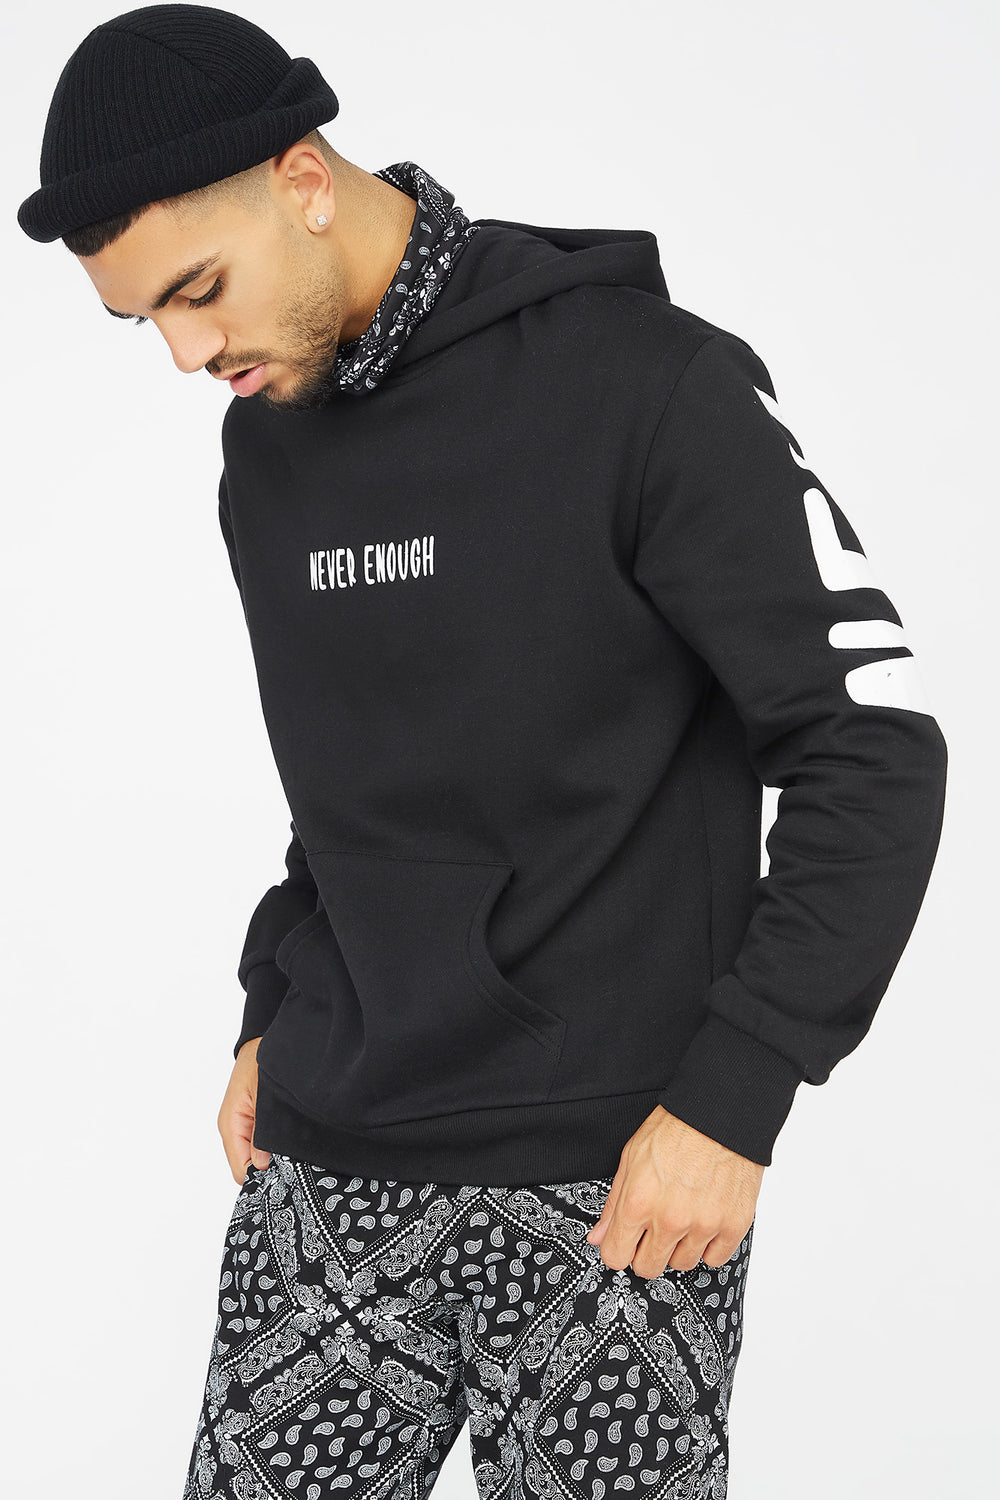 Never Enough Graphic Snood Hoodie Black